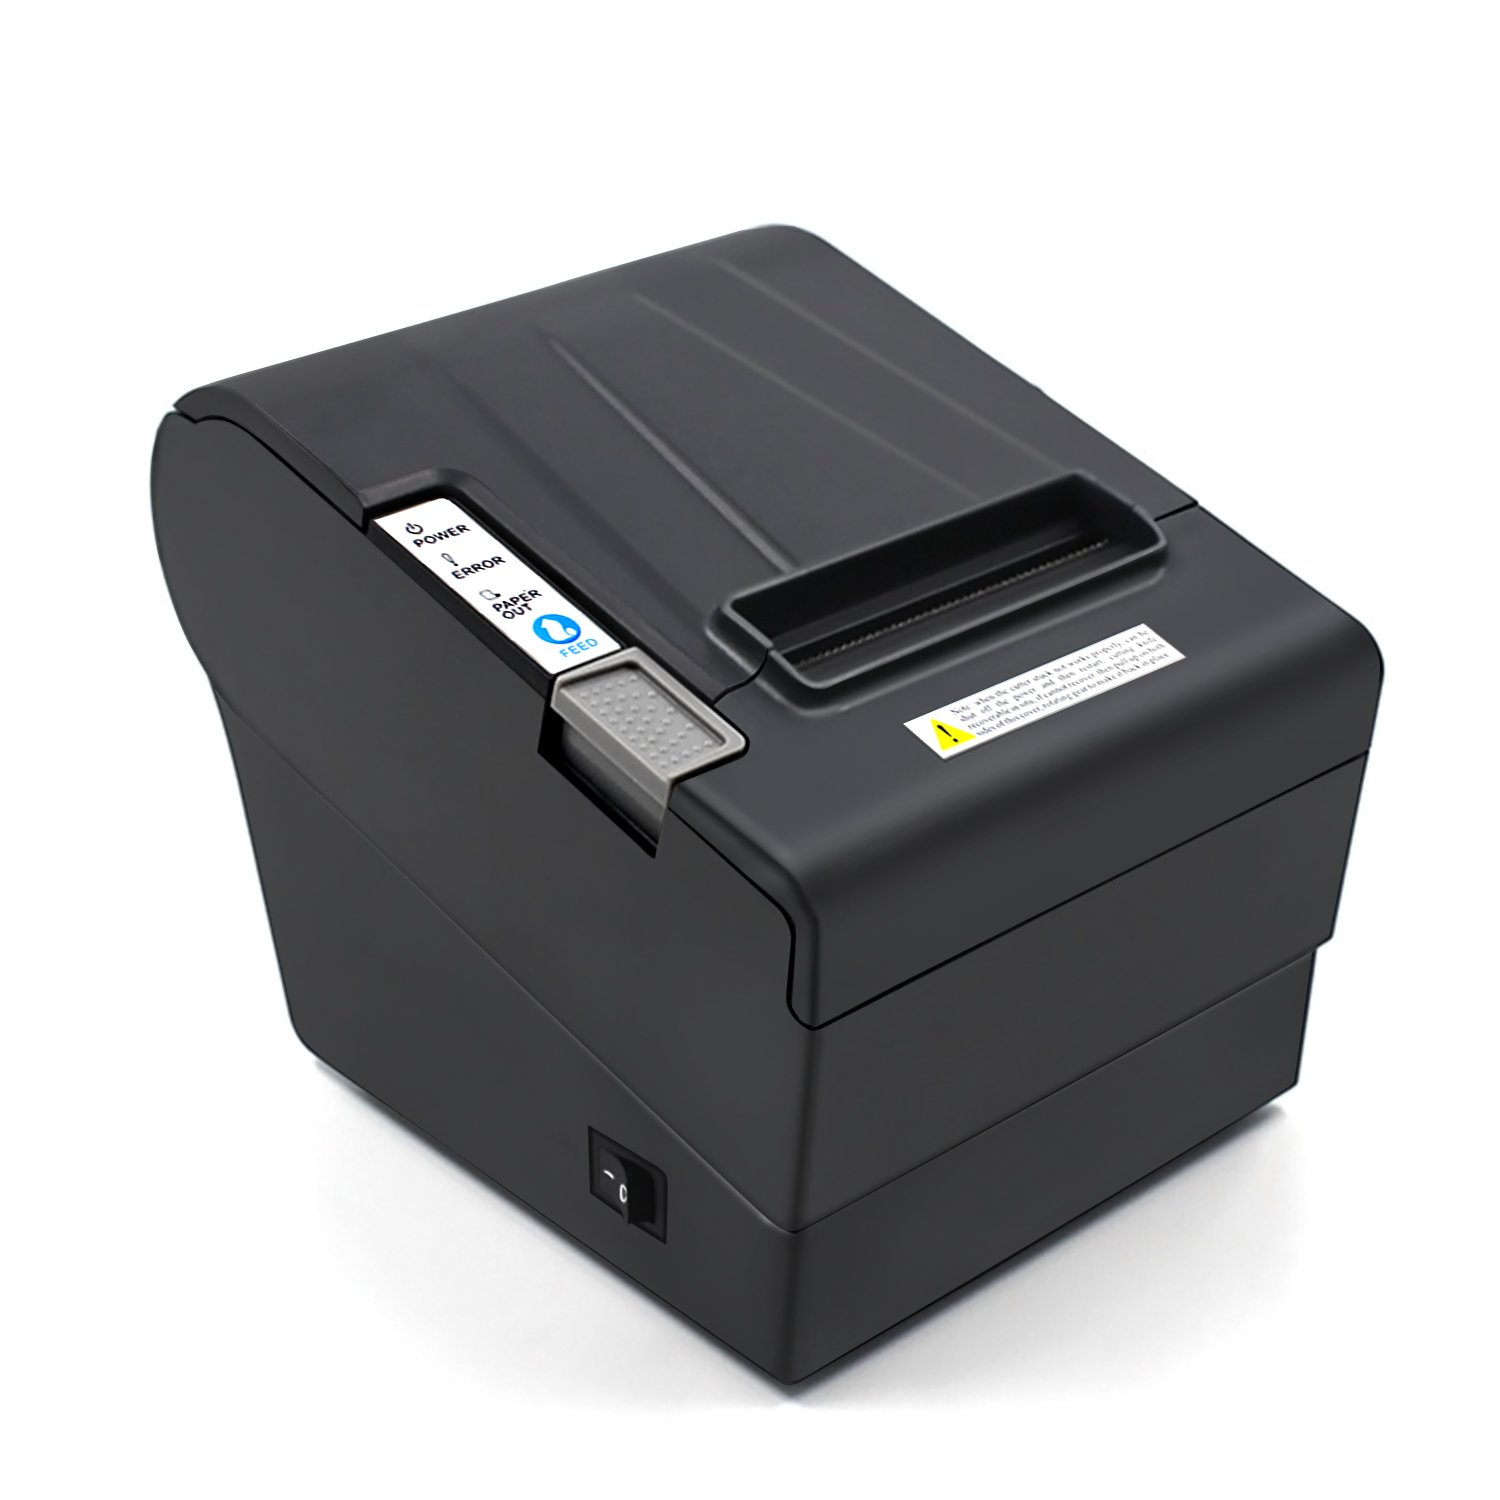 Desktop POS Direct Thermal Receipt Printer,300mm/second Print Speed--Auto Cutter--USB/RS232/LAN Multiple Ports--Compatible With POS Commands--Work on Windows XP/7/8/8.1/10/Linux/Android